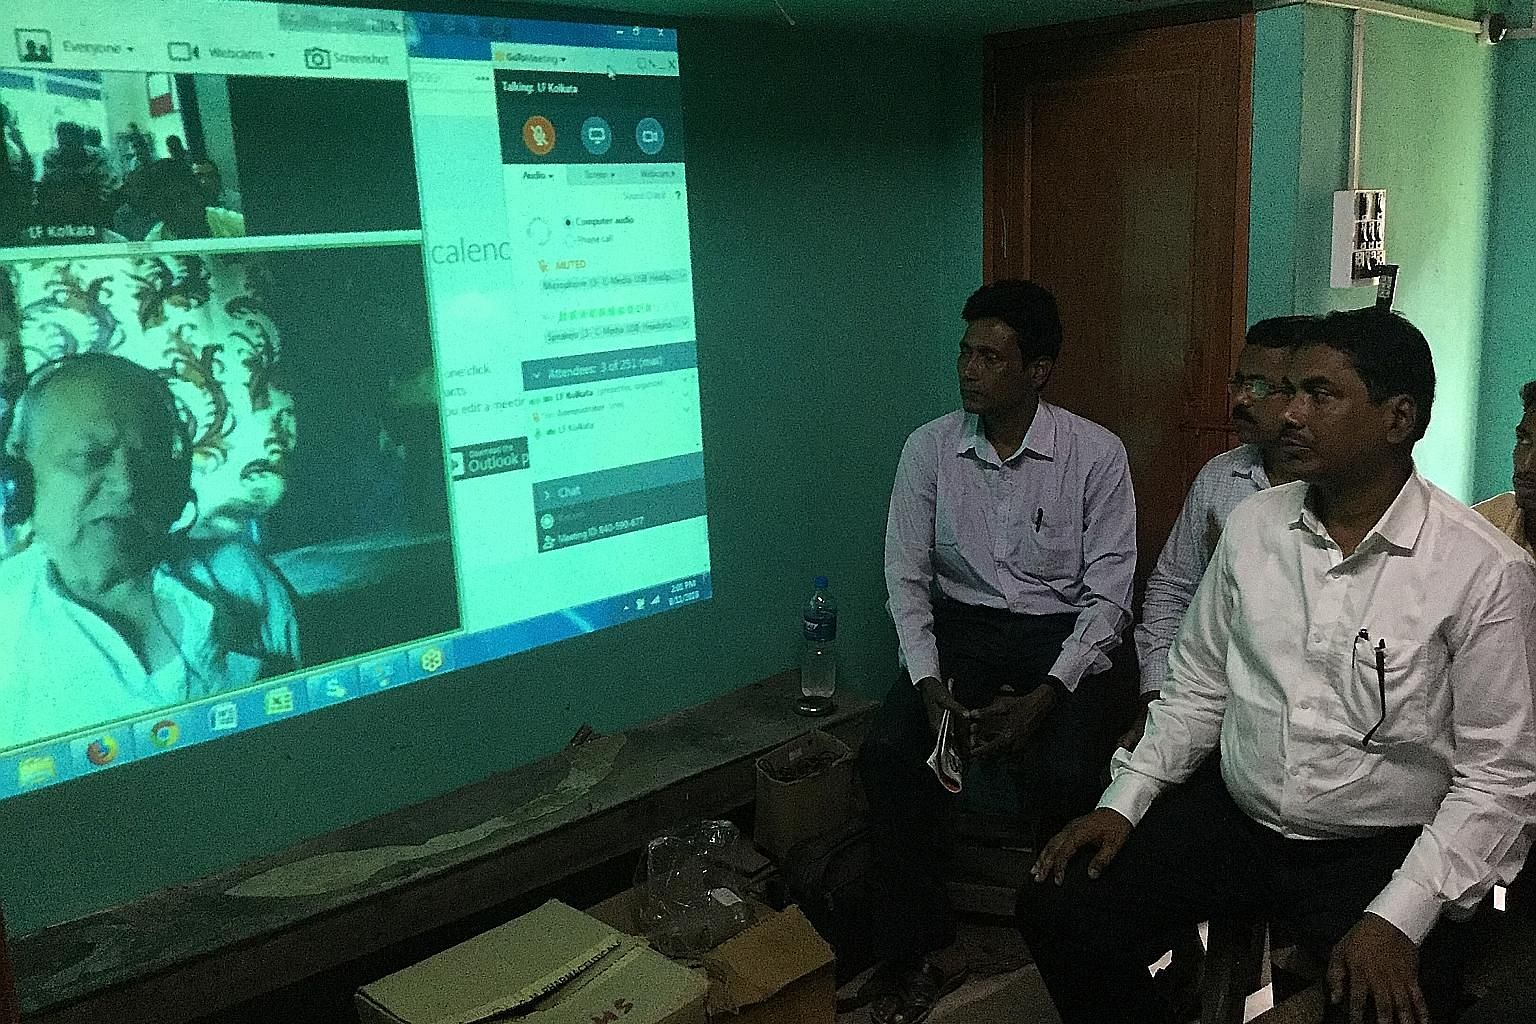 A group of rural healthcare workers in West Bengal being trained via video conference. The non-profit Liver Foundation has trained about 3,000 such workers, and the nine-month programme covers subjects such as basic human physiology and anatomy as we